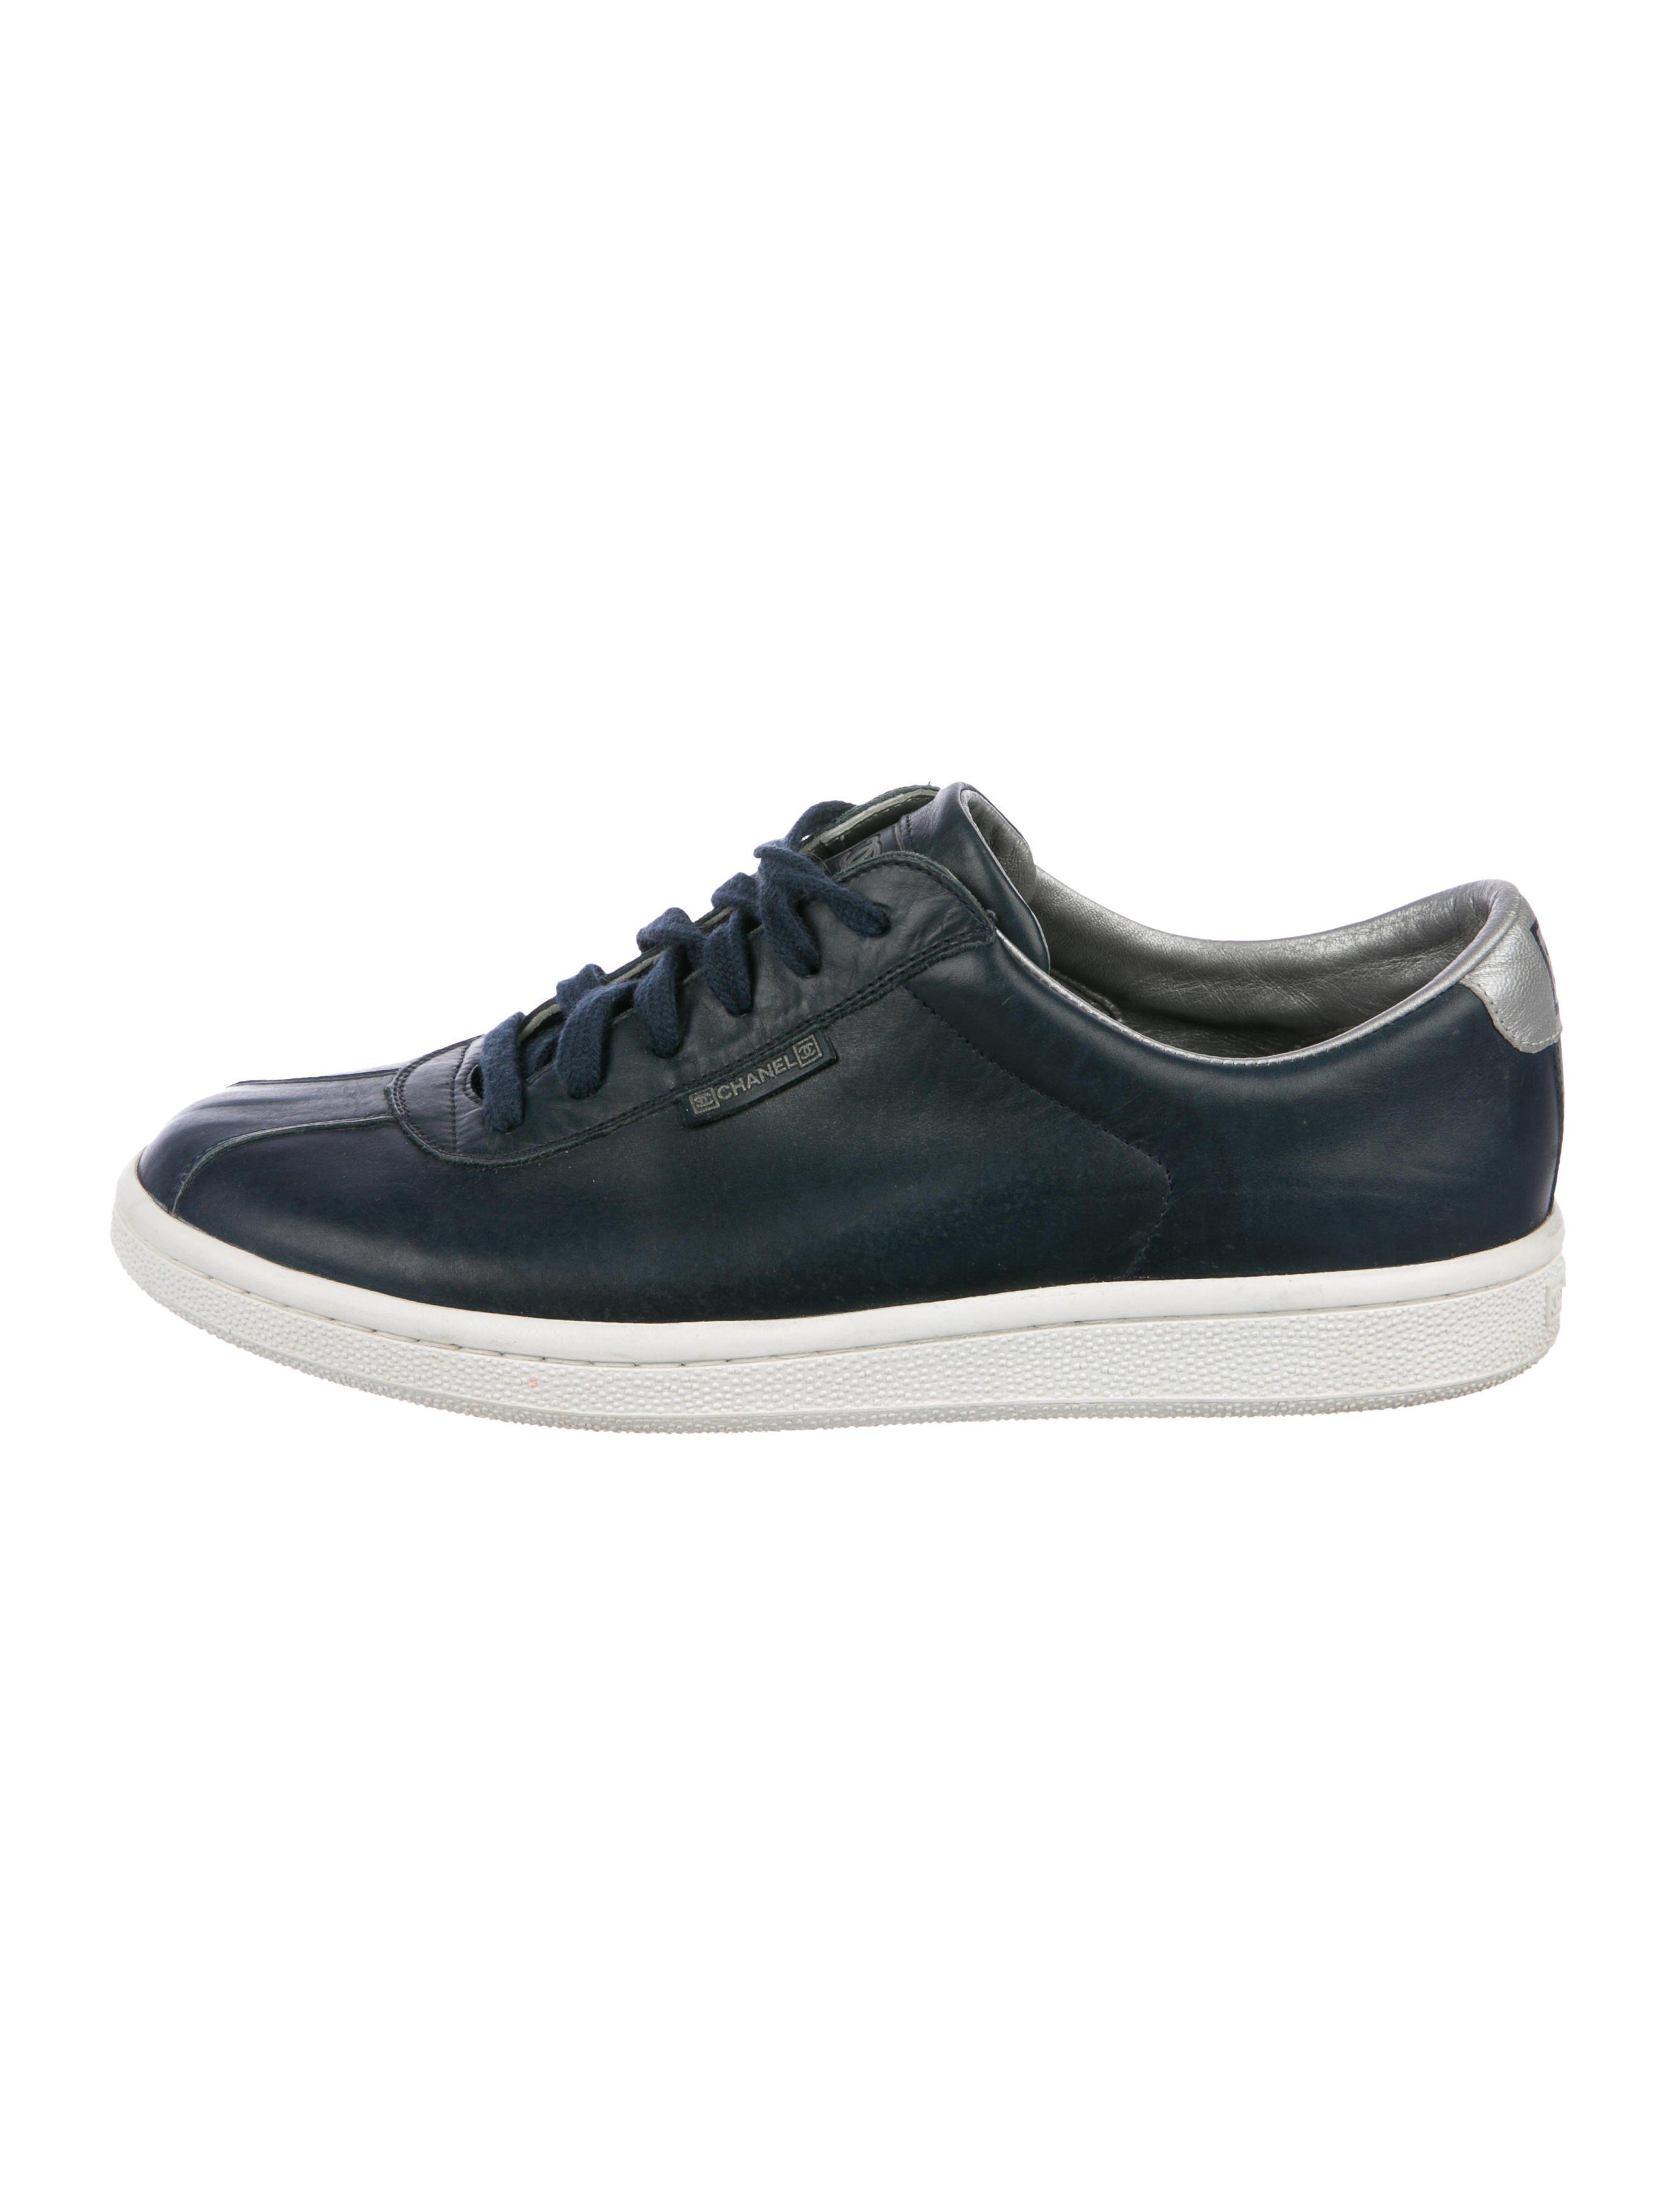 a1ef4fca0678 Lyst - Chanel Leather Low-top Sneakers Navy in Blue